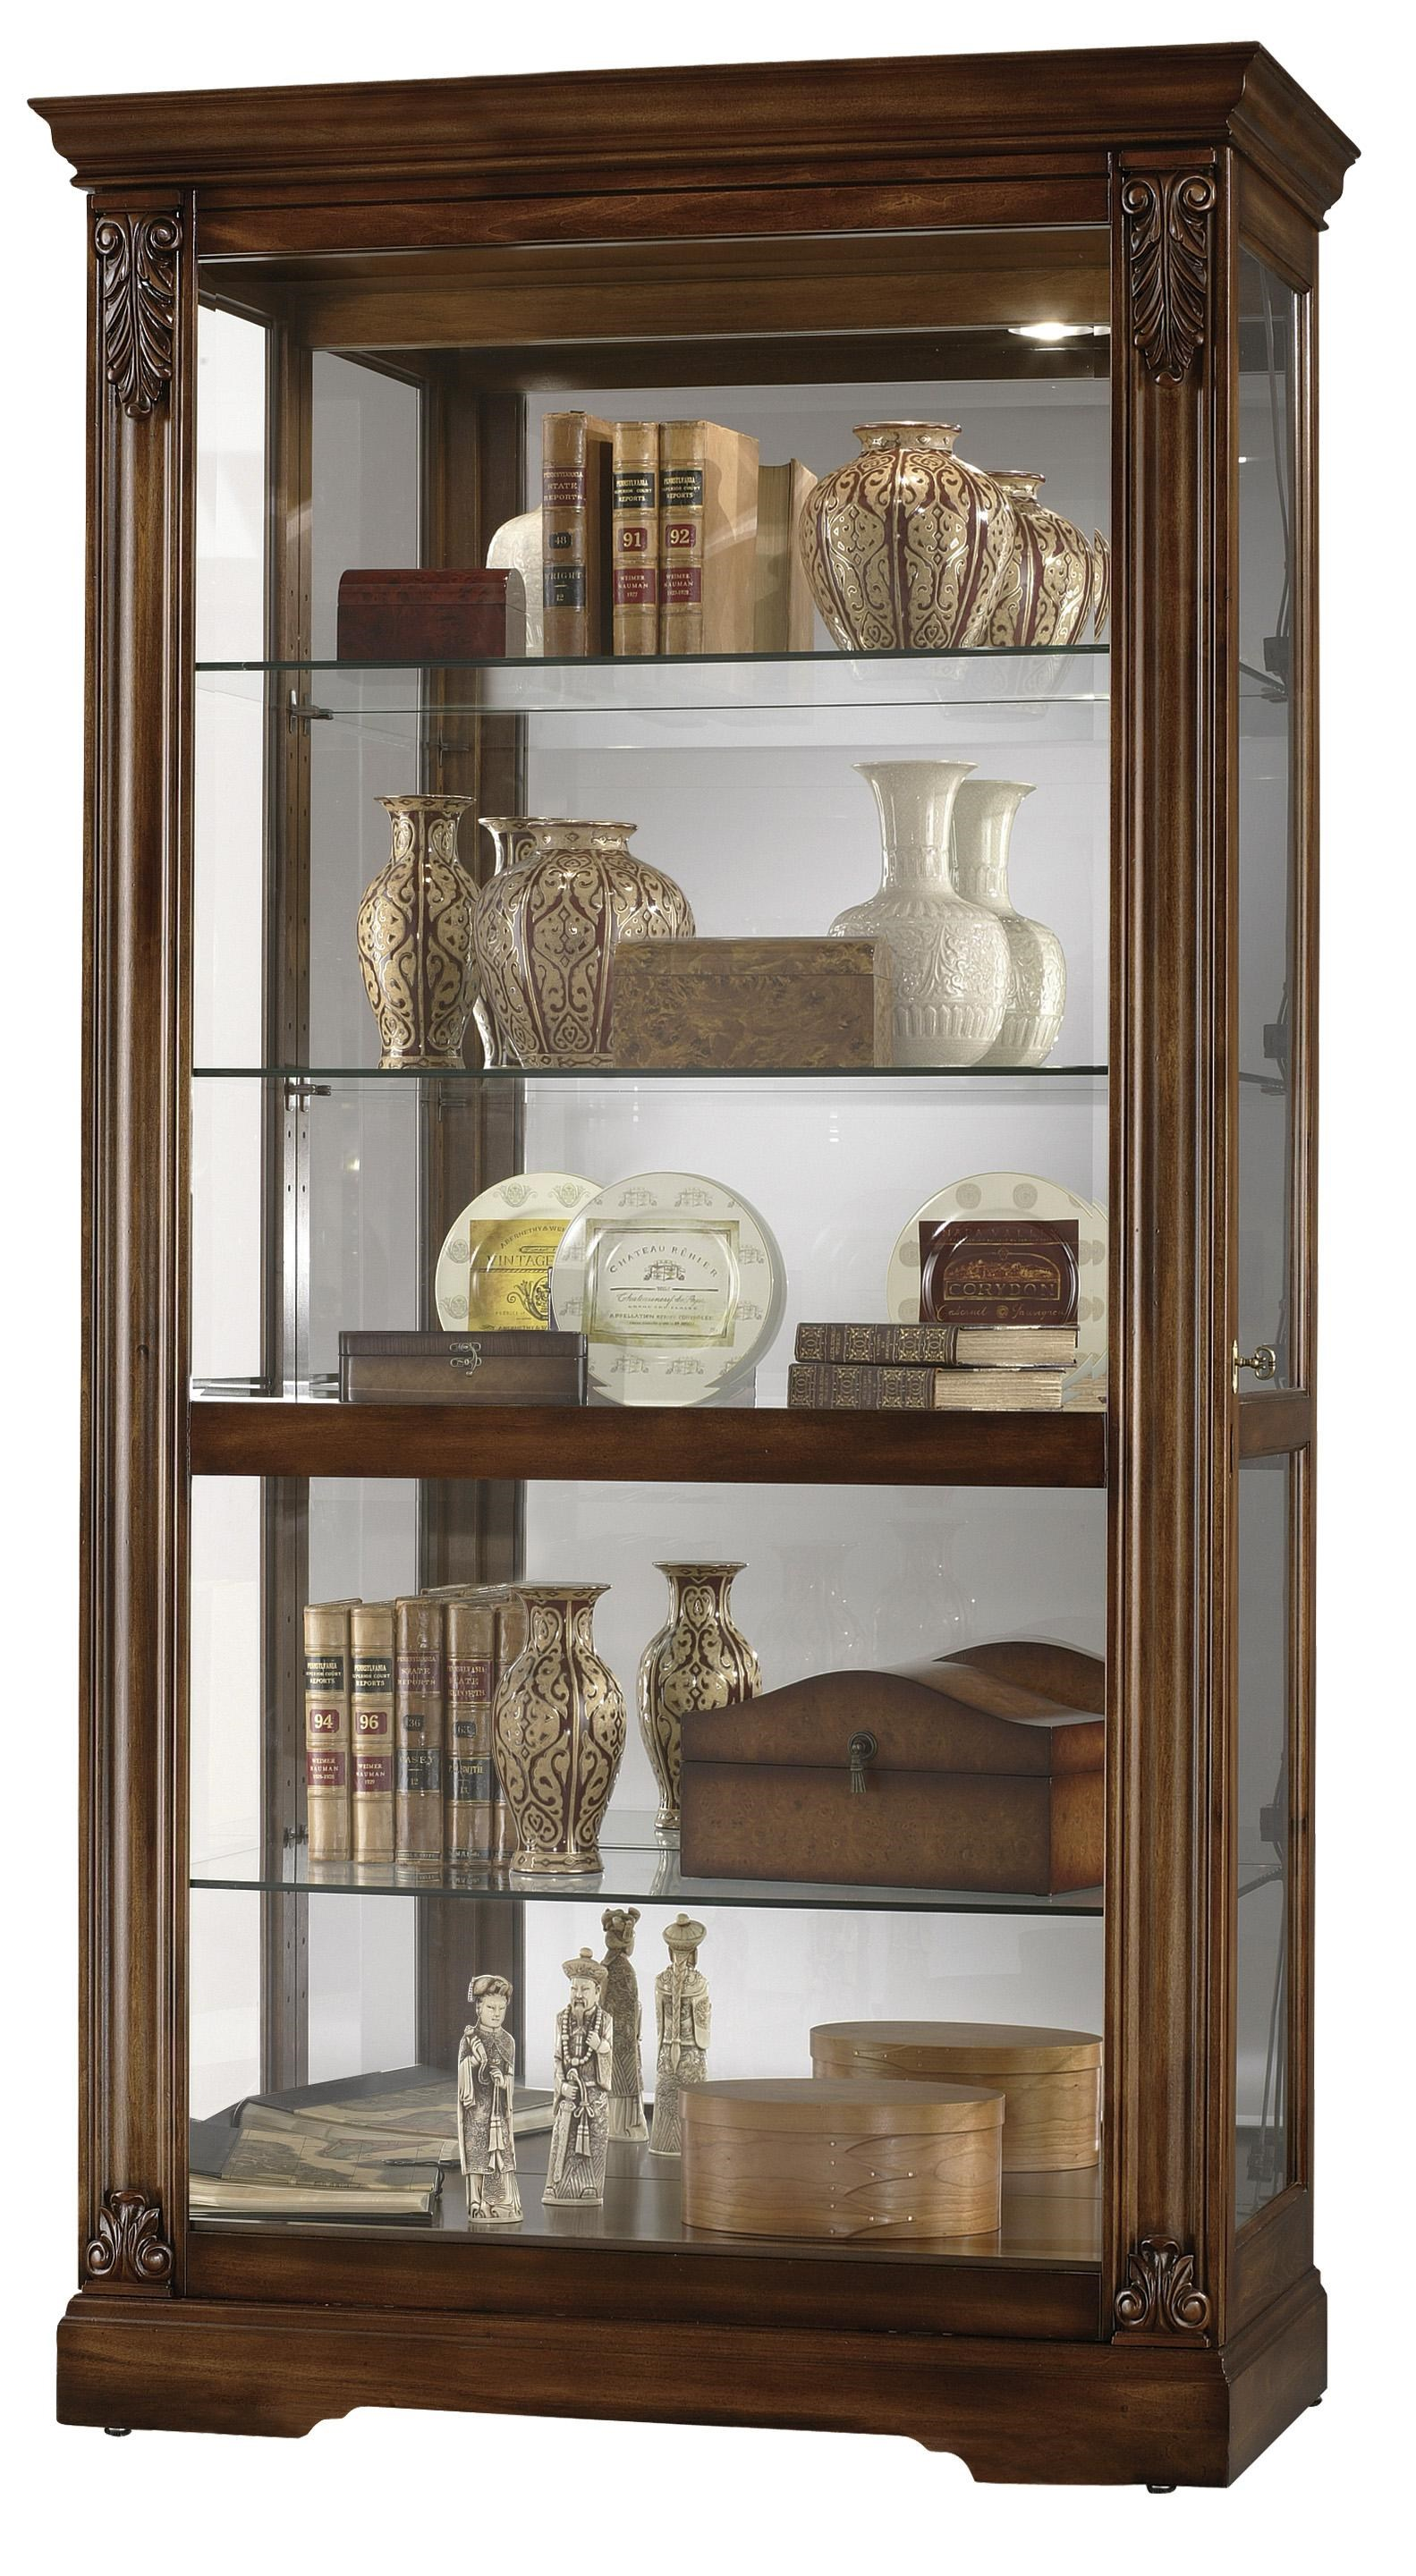 Furniture Trend Designs Curios Andreus Display Cabinet By Howard Miller